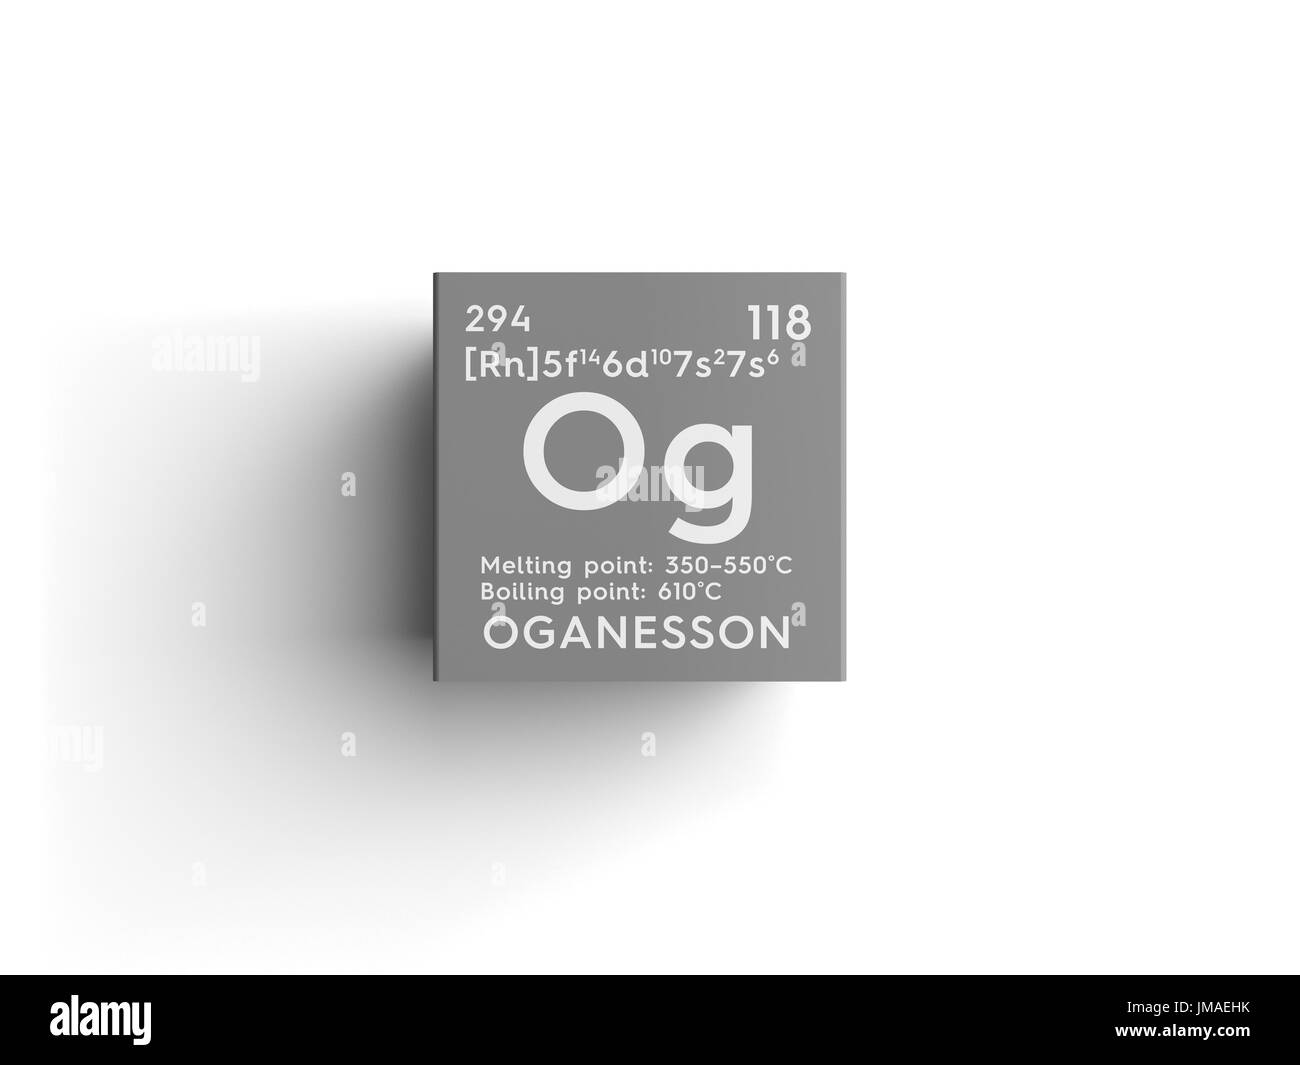 Oganesson noble gases chemical element of mendeleevs periodic noble gases chemical element of mendeleevs periodic table oganesson in square cube creative concept urtaz Choice Image